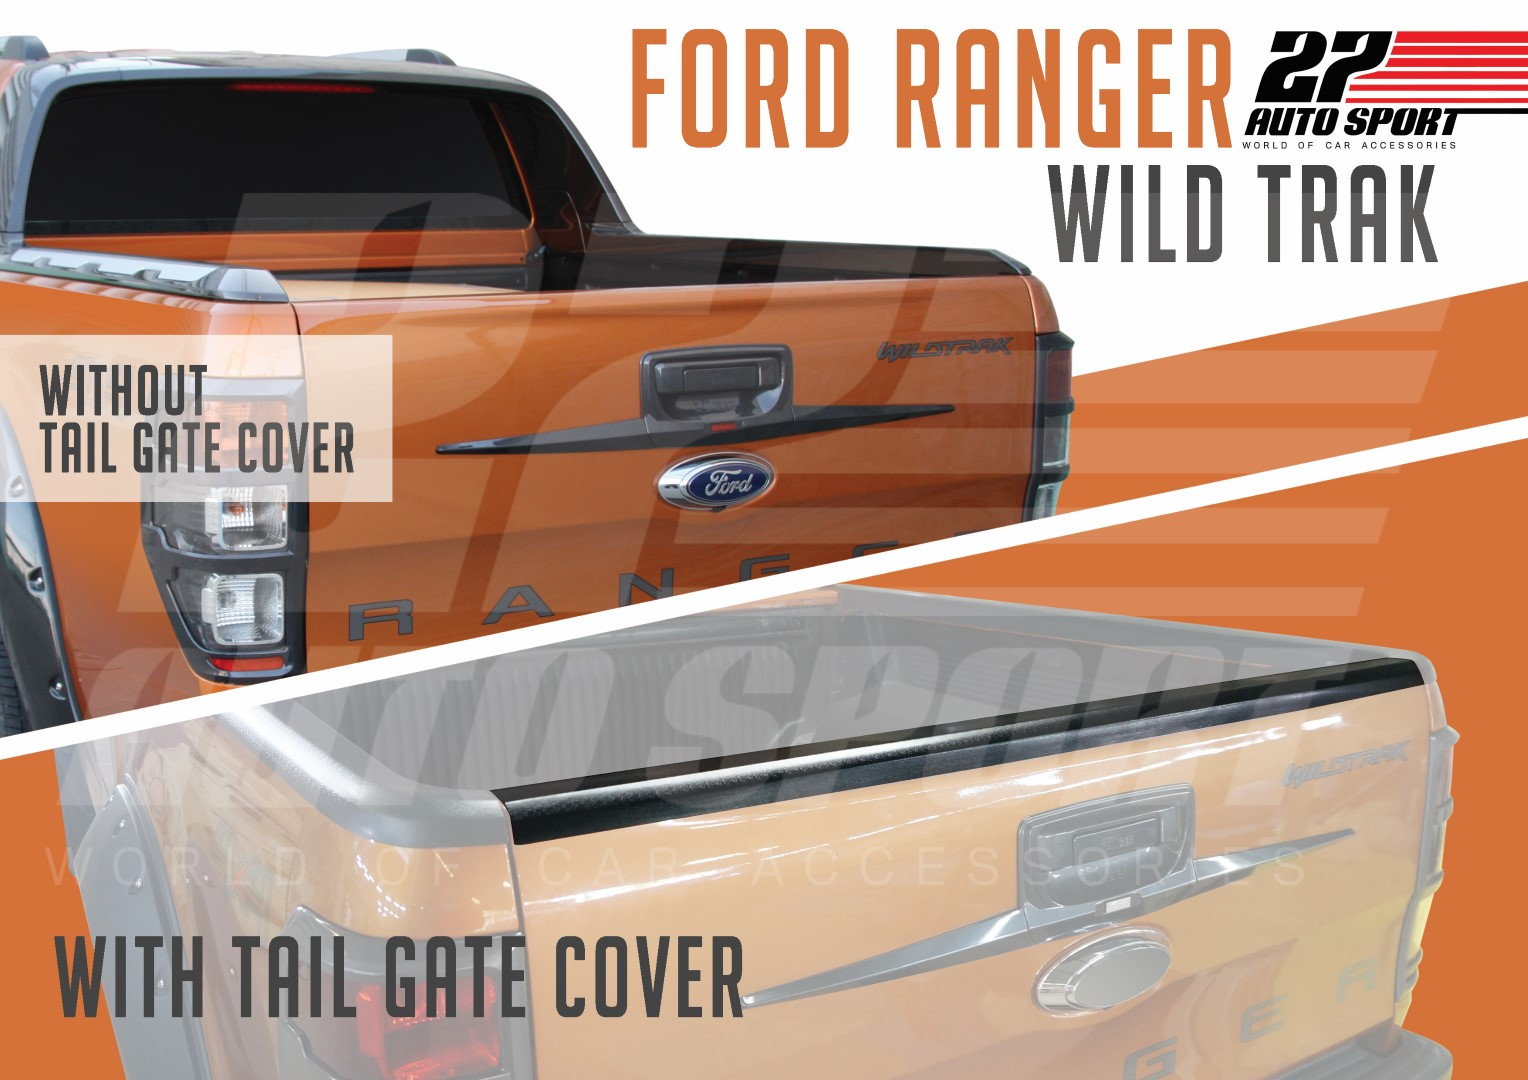 tail gate cover ranger 27